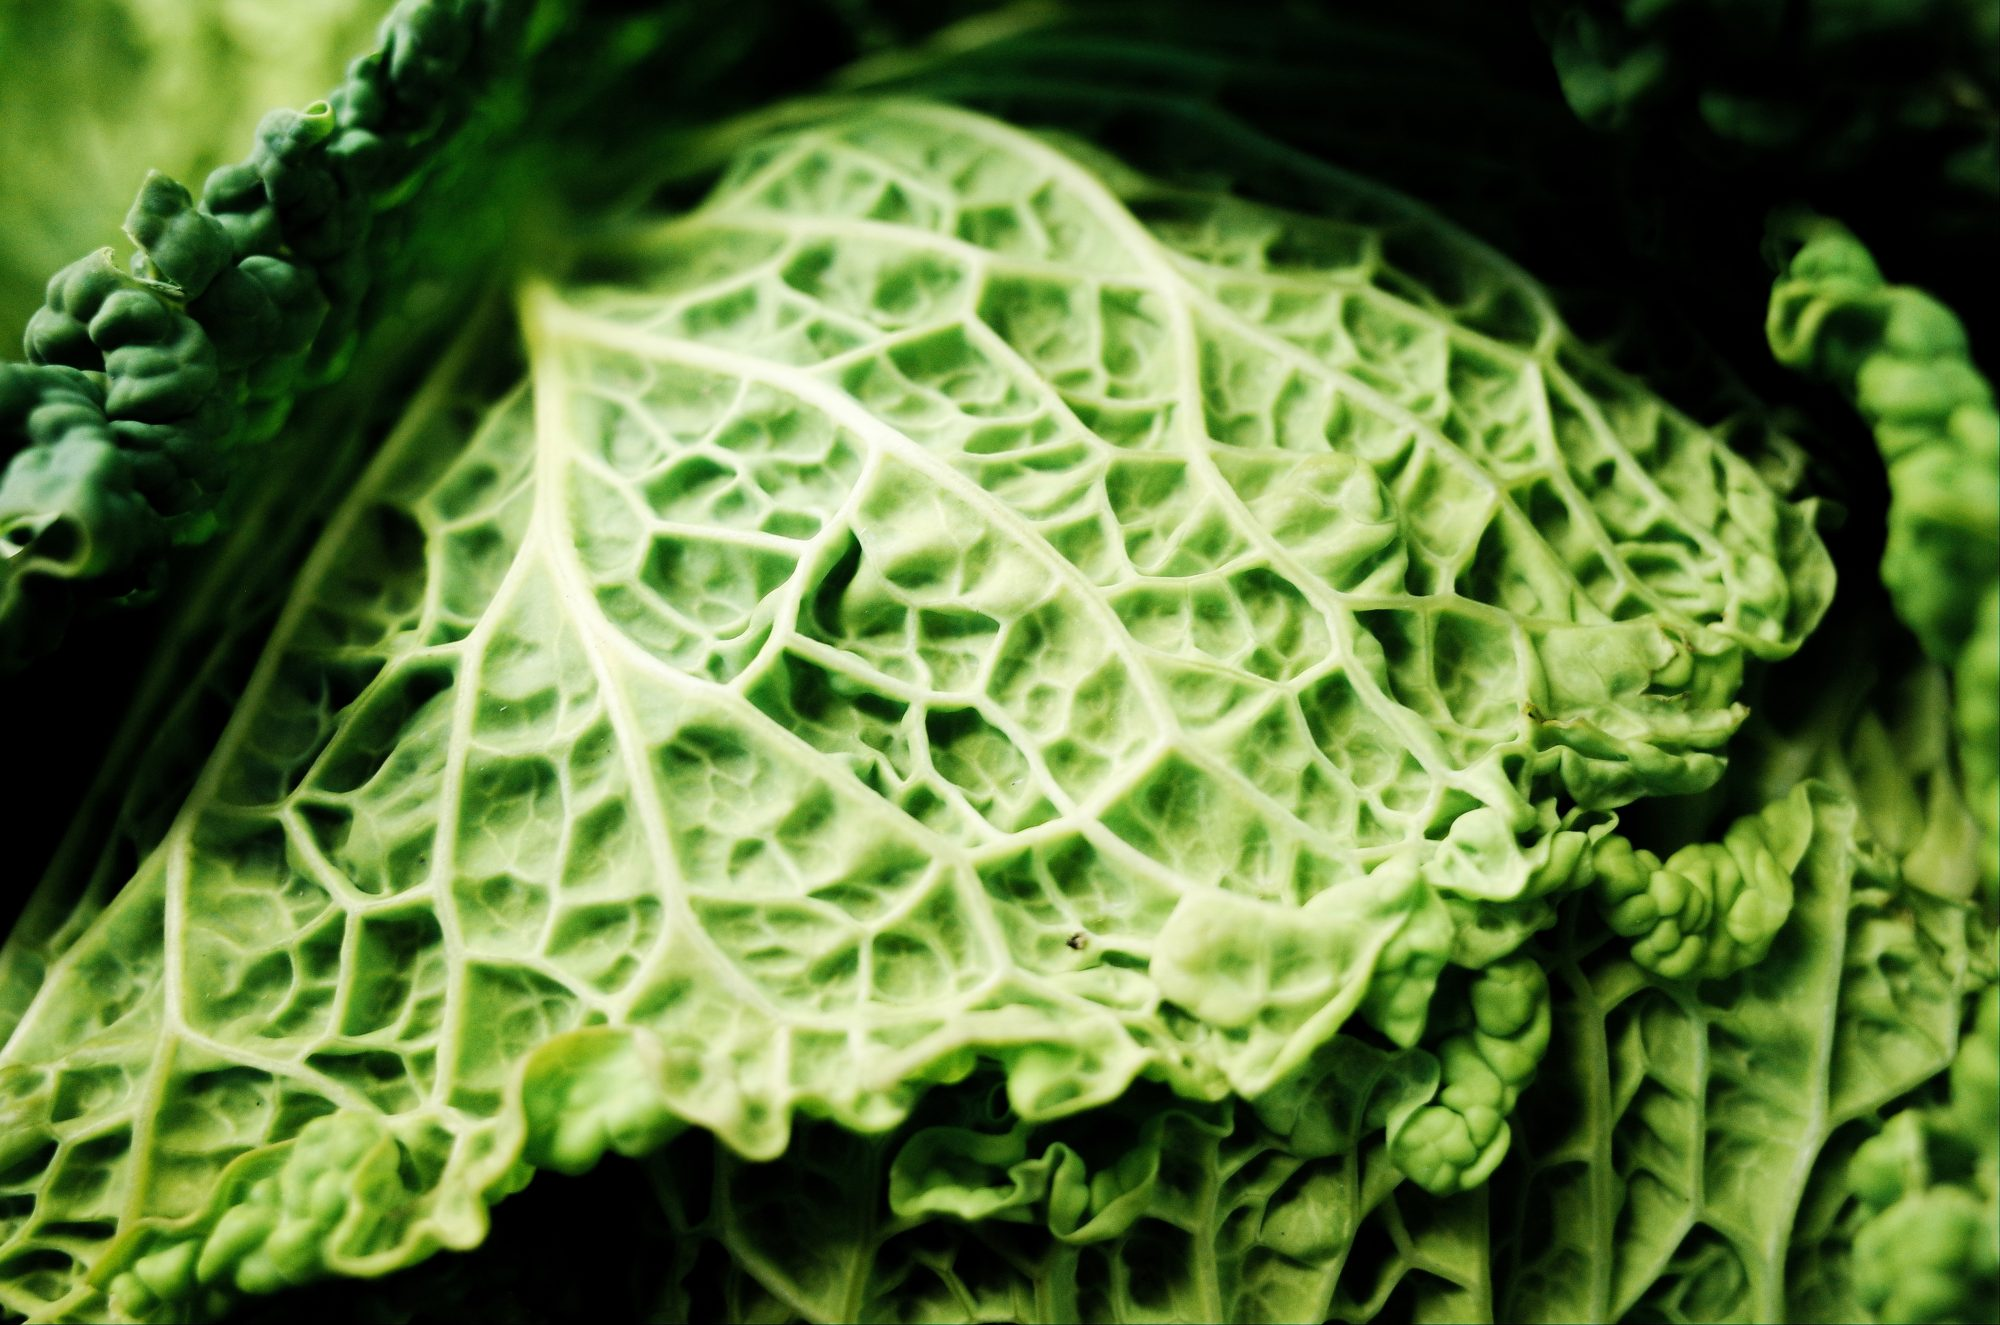 Texture of lettuce leaf. Marseille